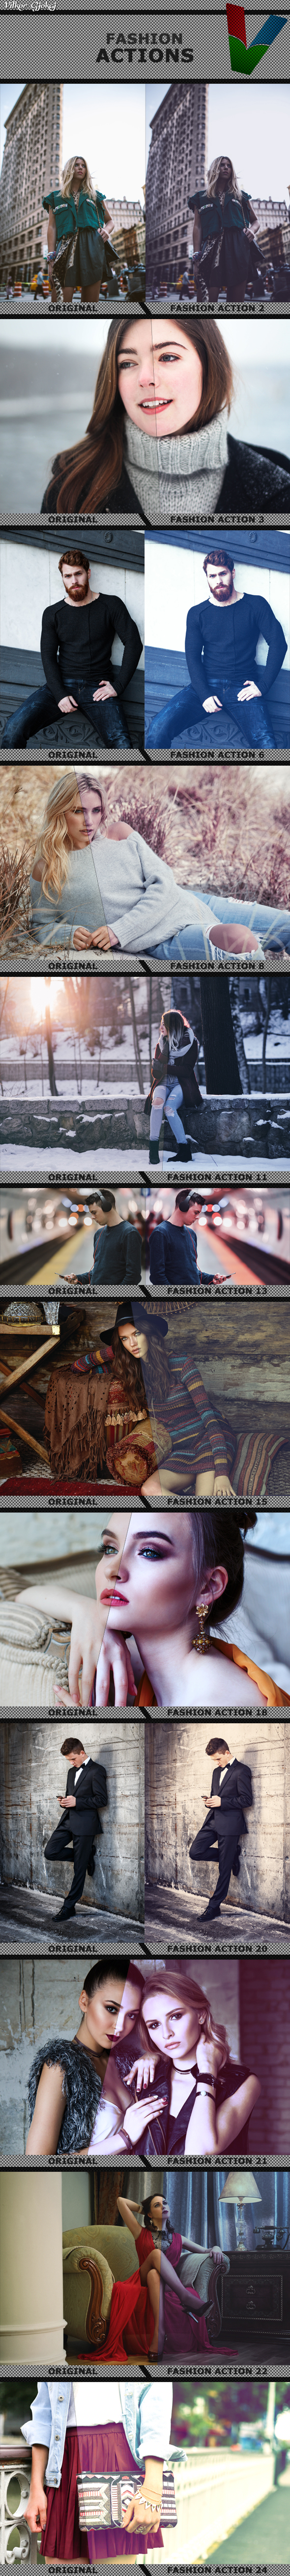 GraphicRiver Fashion Actions 1 20898988